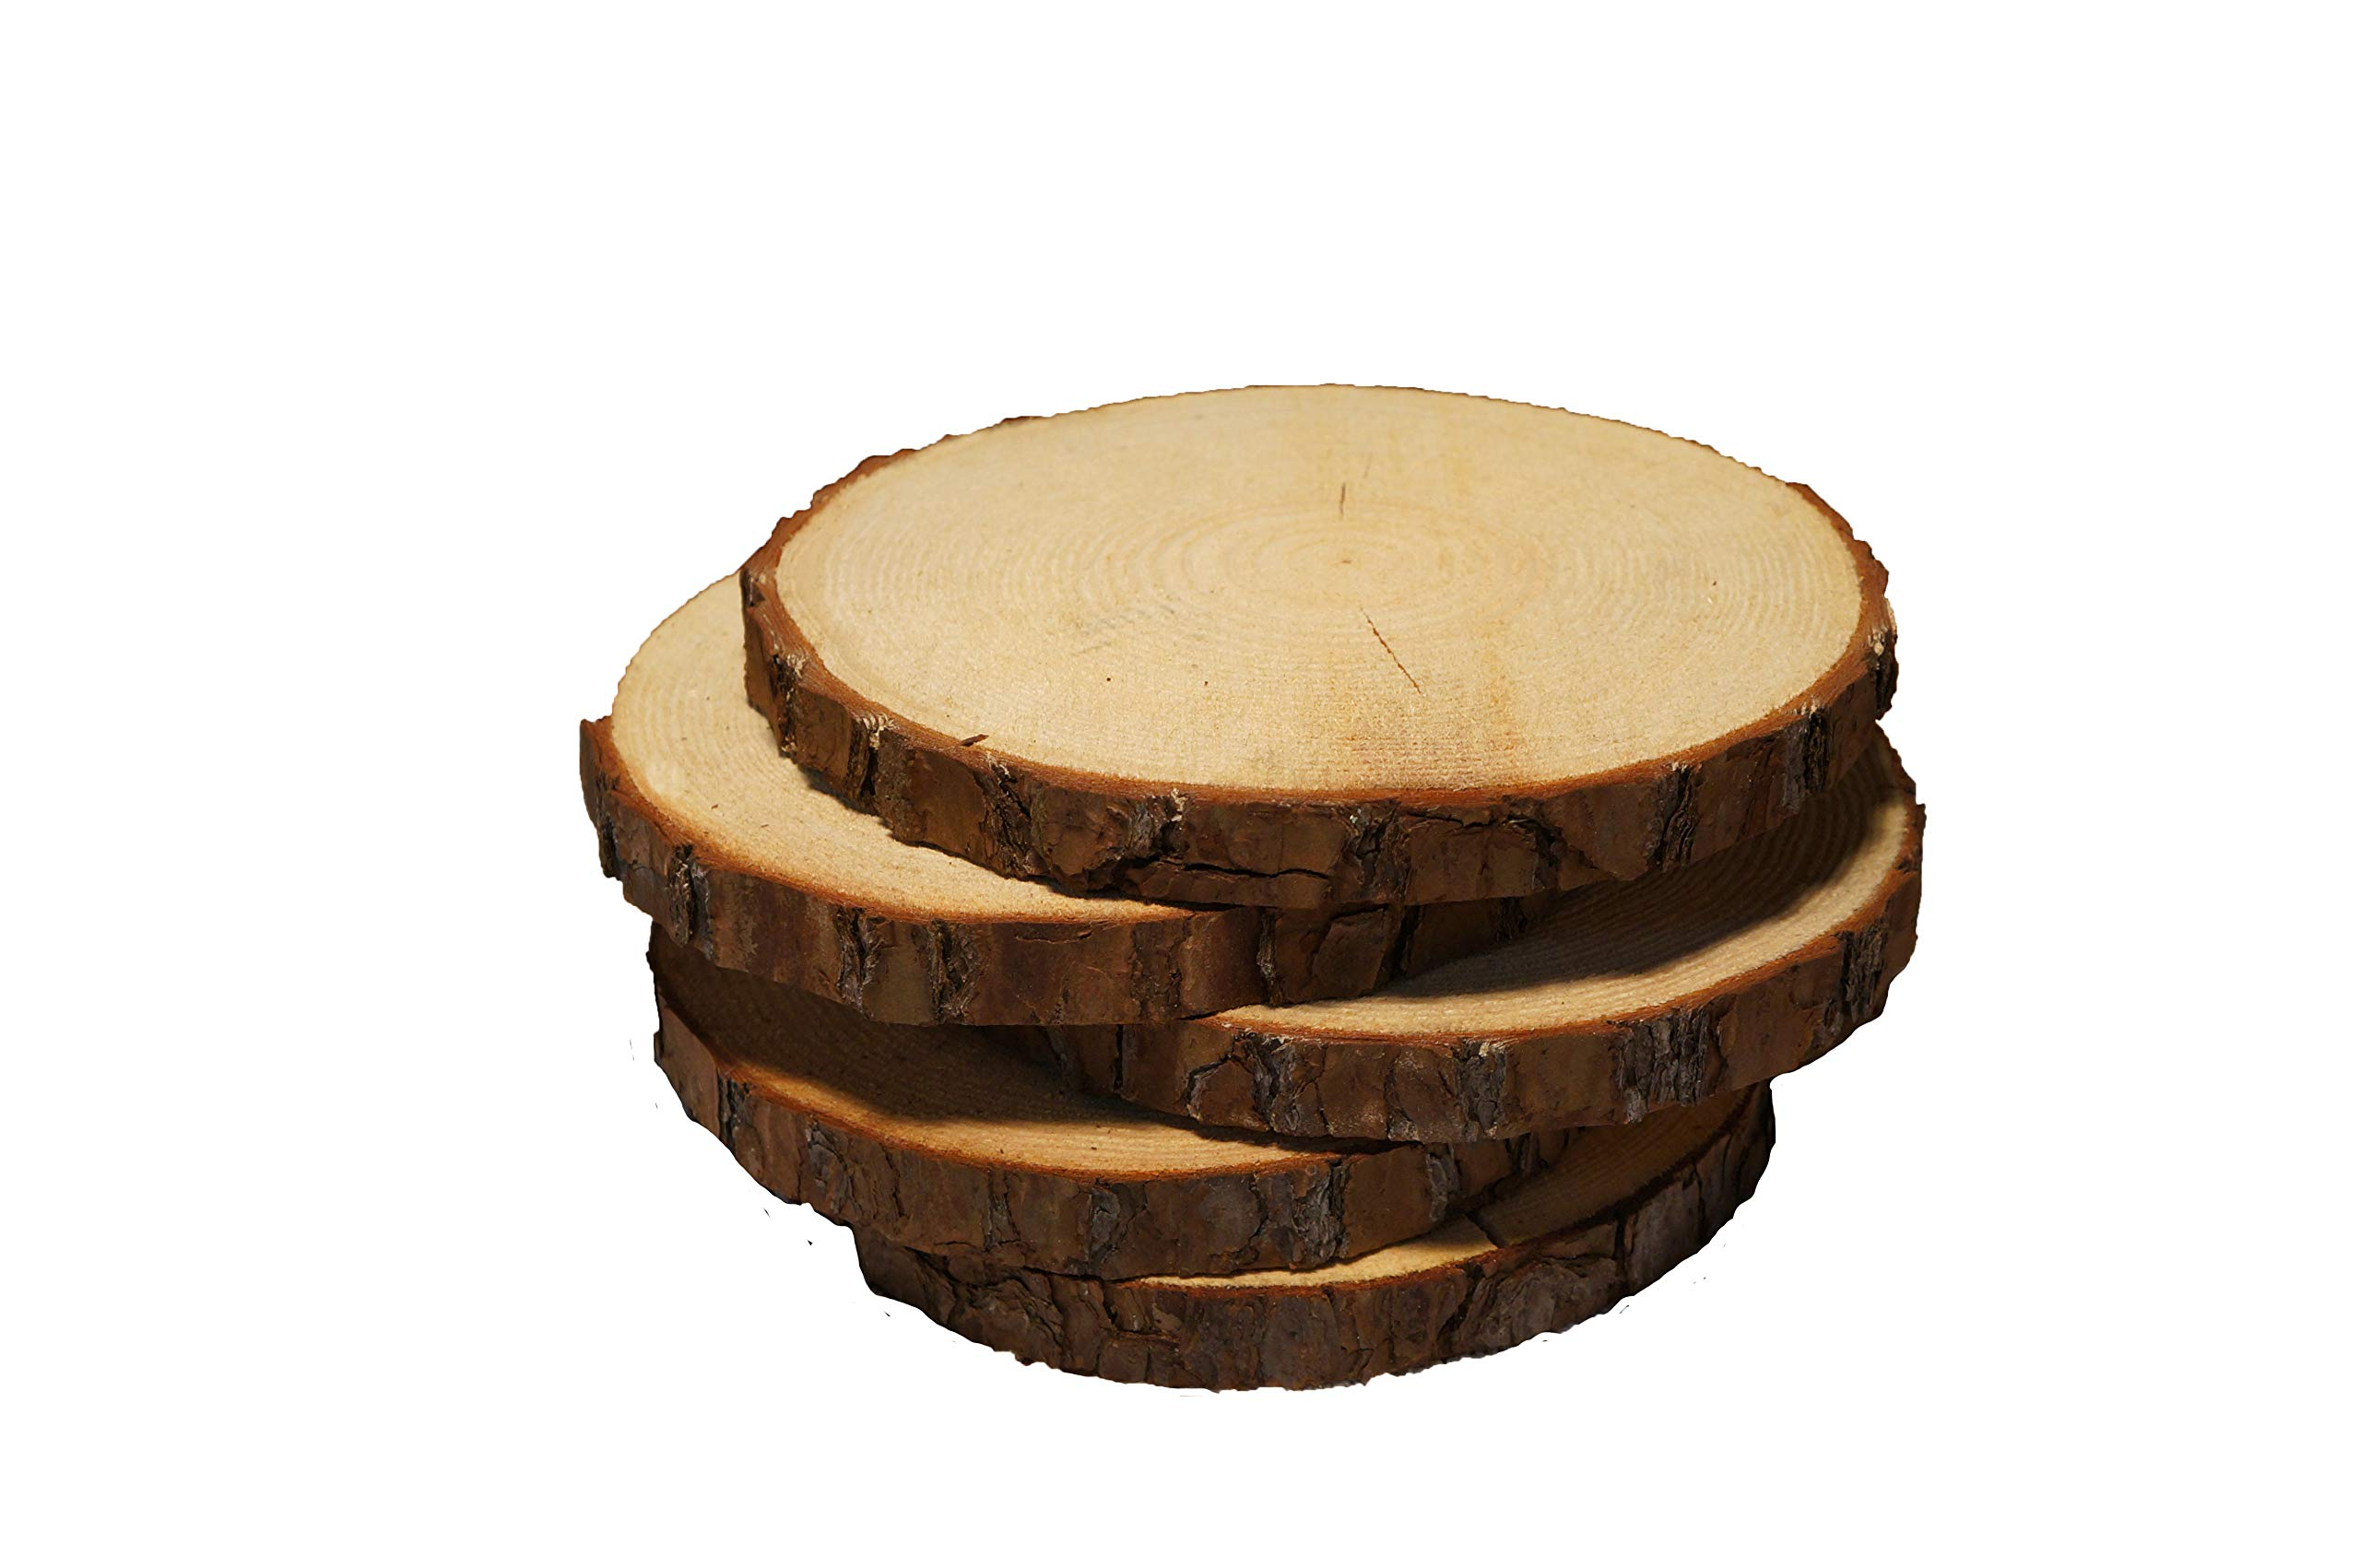 5 Pack Round Rustic Woods Slices with Cracks, 9''-12'', Unfinished Wood, Great for Weddings Centerpieces, Crafts